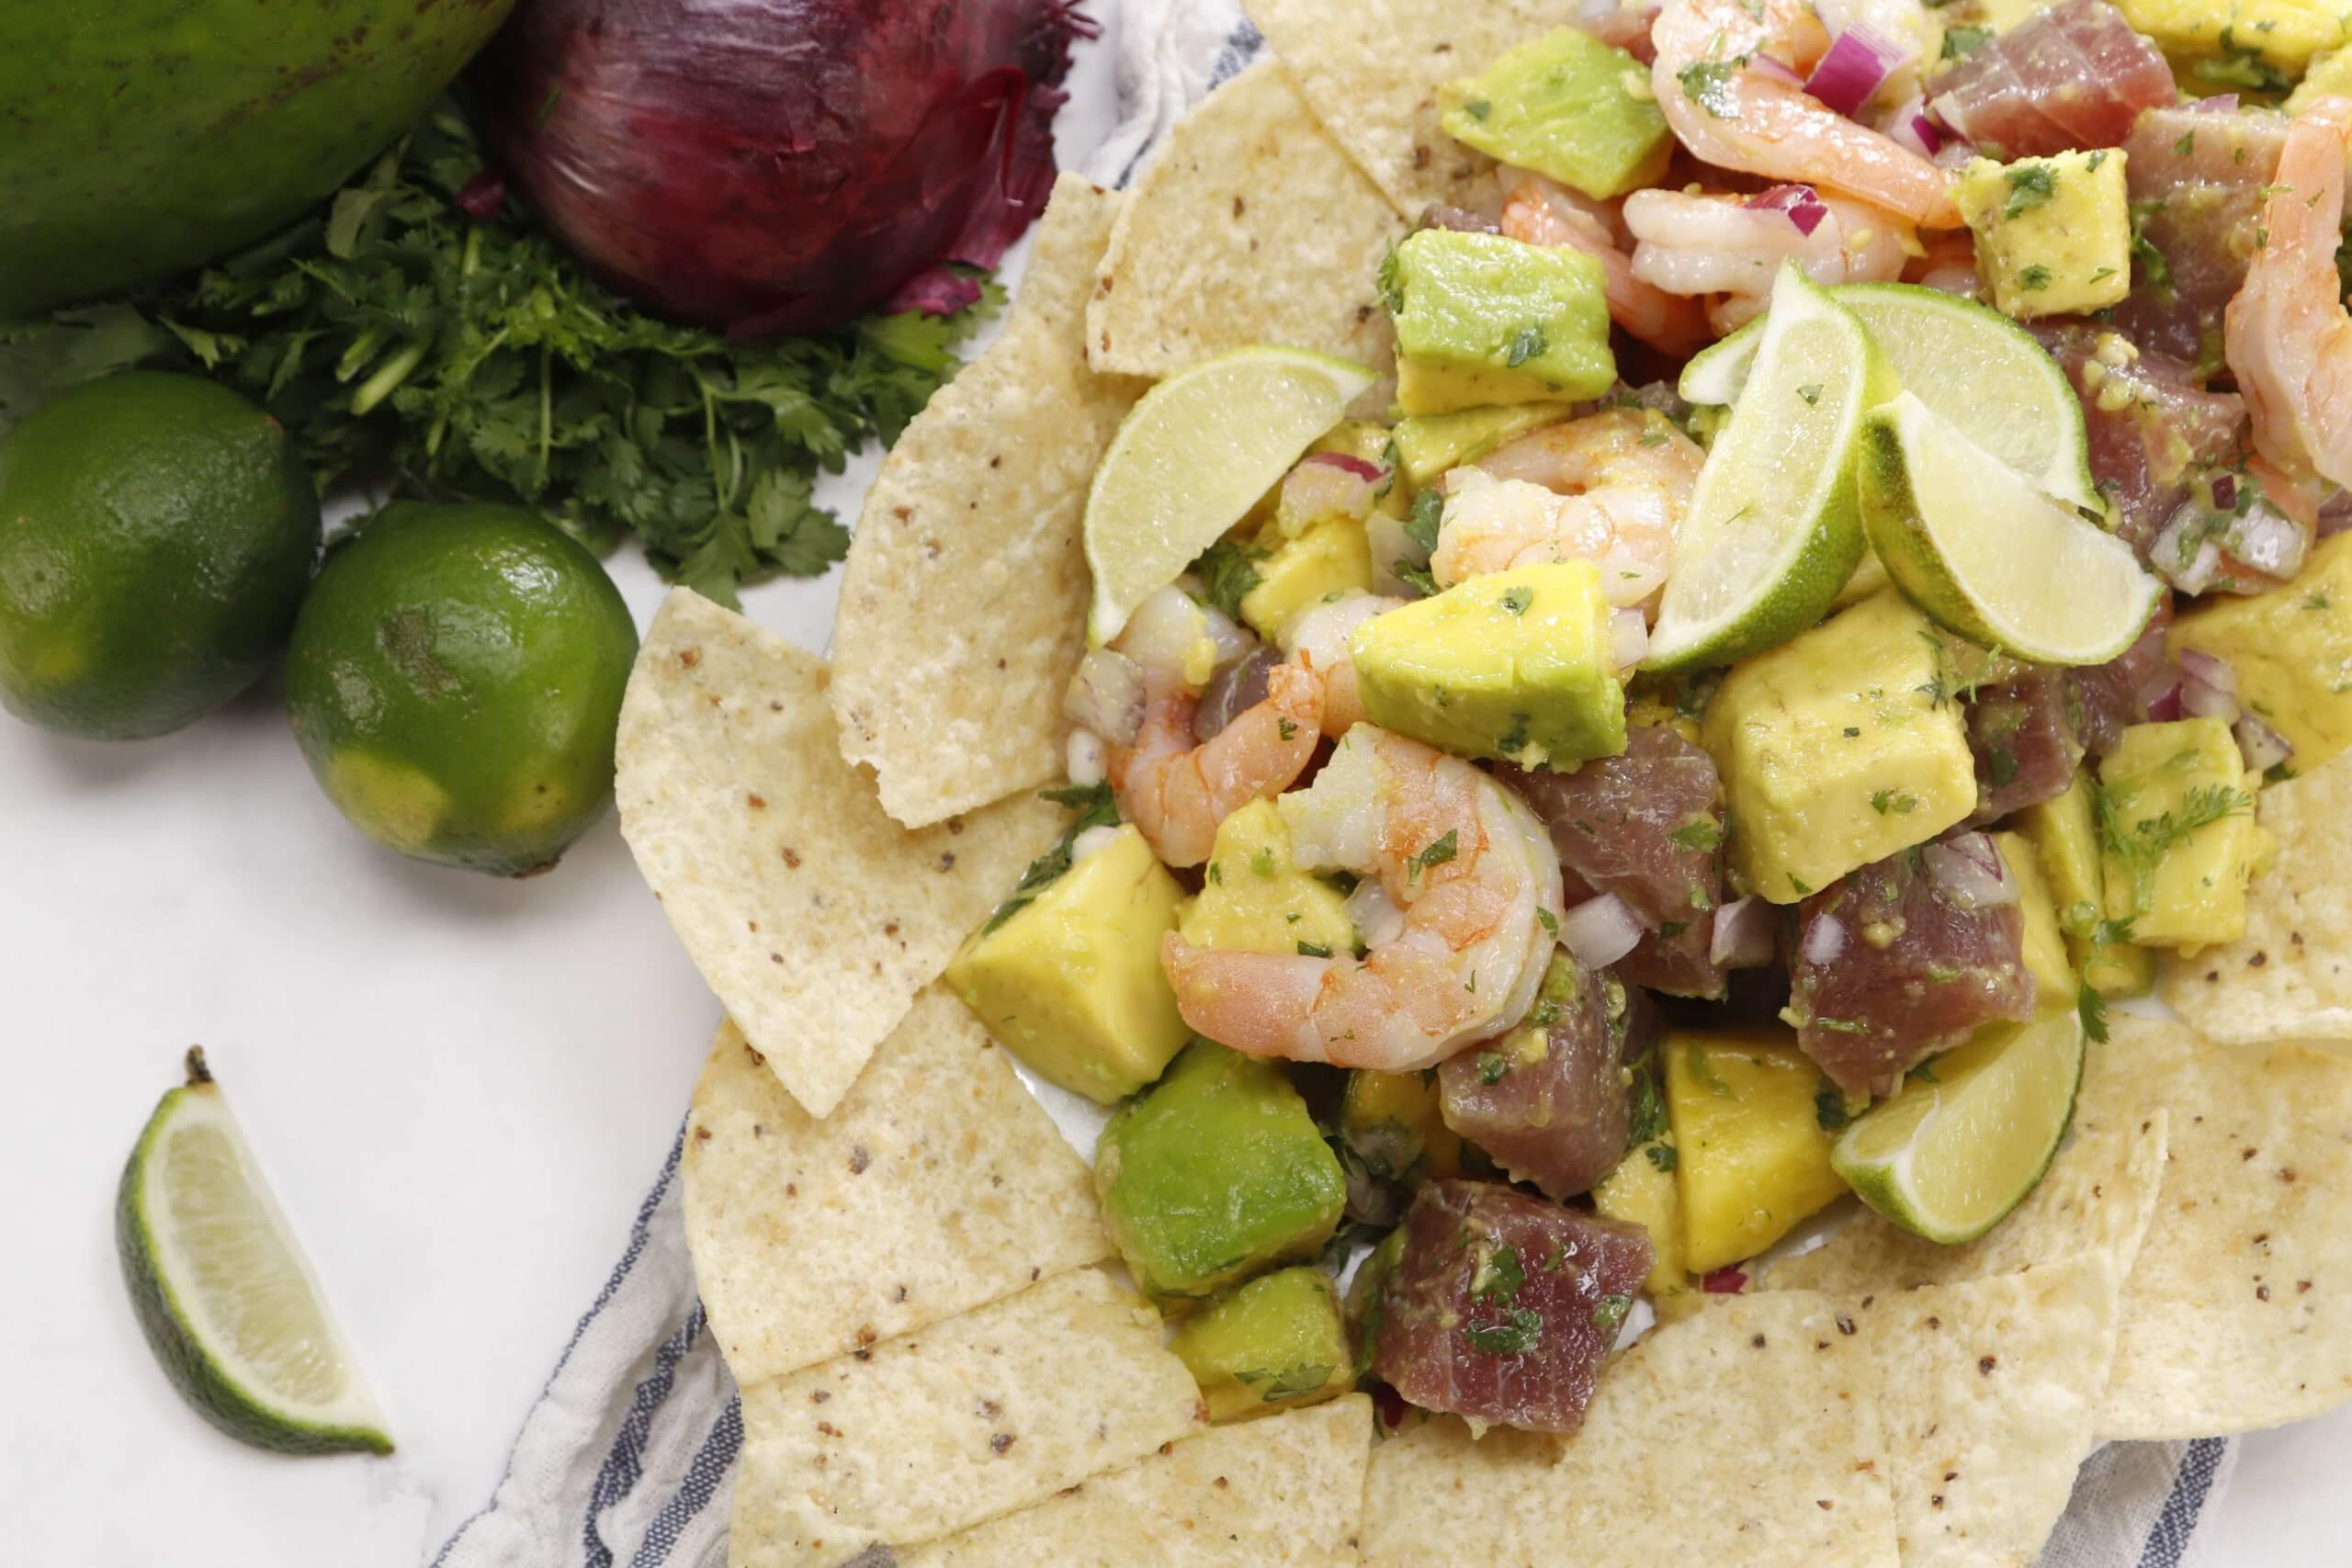 Chef Willy's Tropical Avocado Ceviche Salad